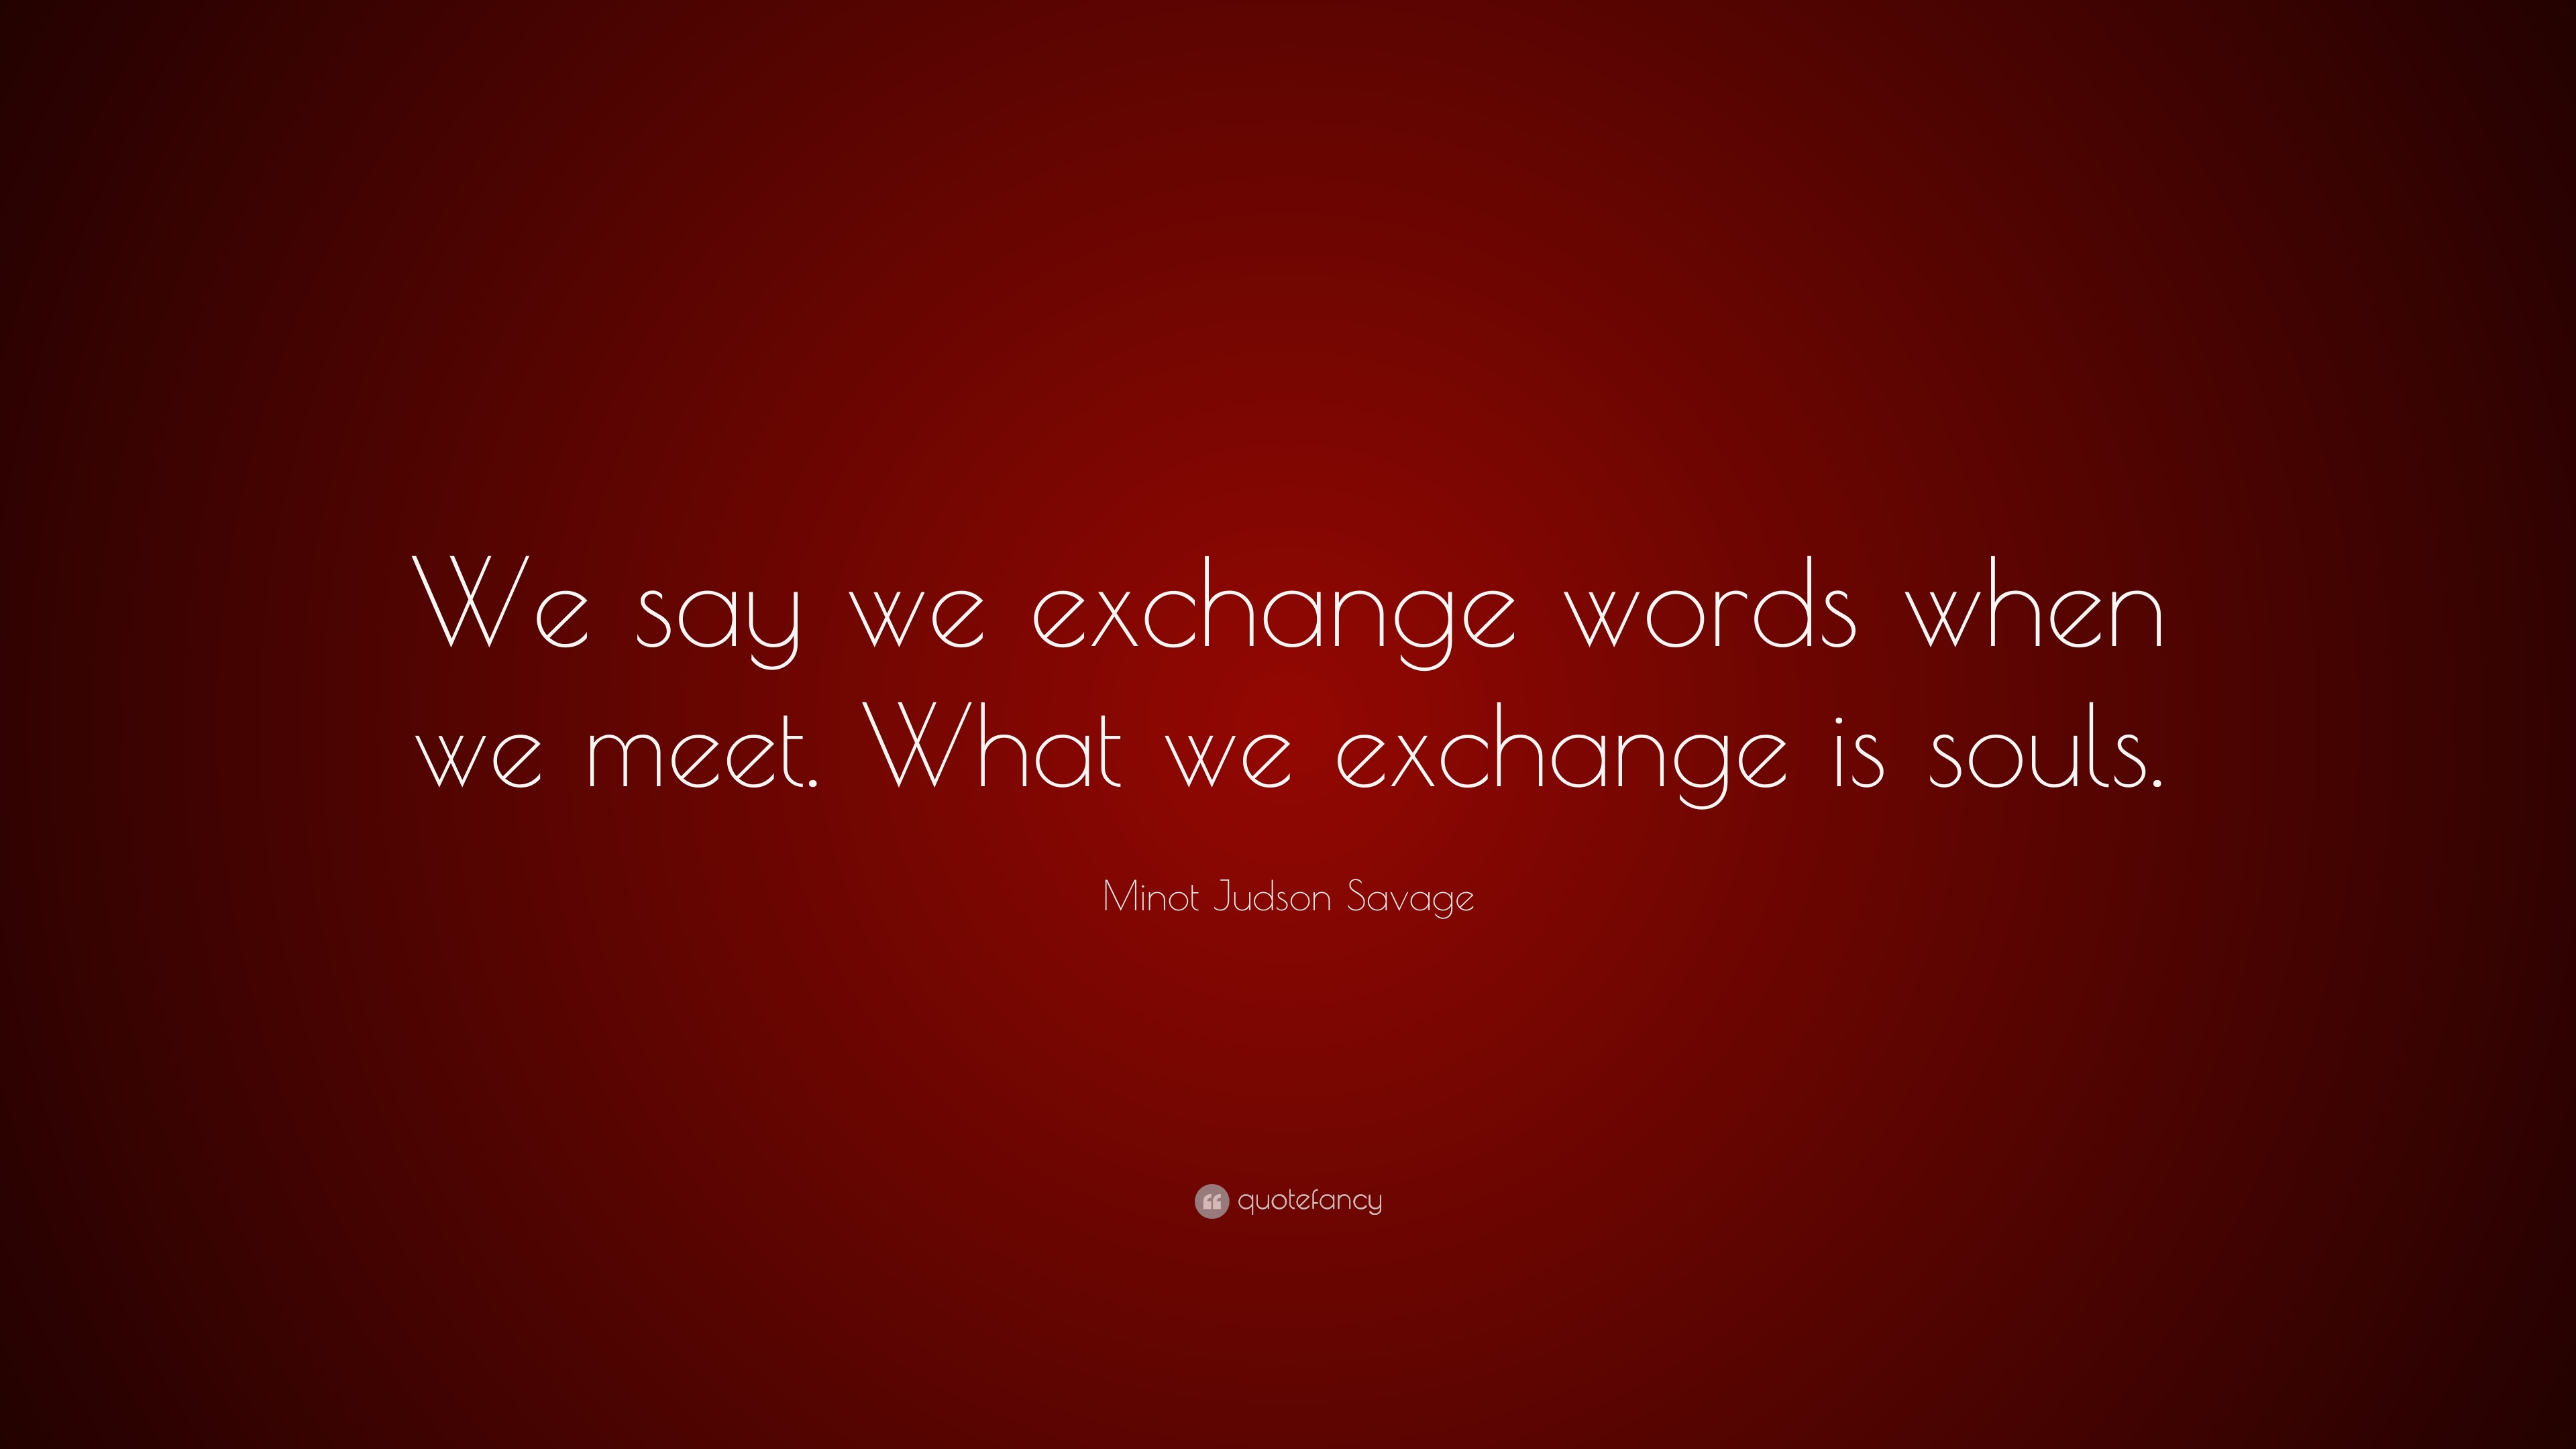 Minot Judson Savage Quotes (2 Wallpapers)